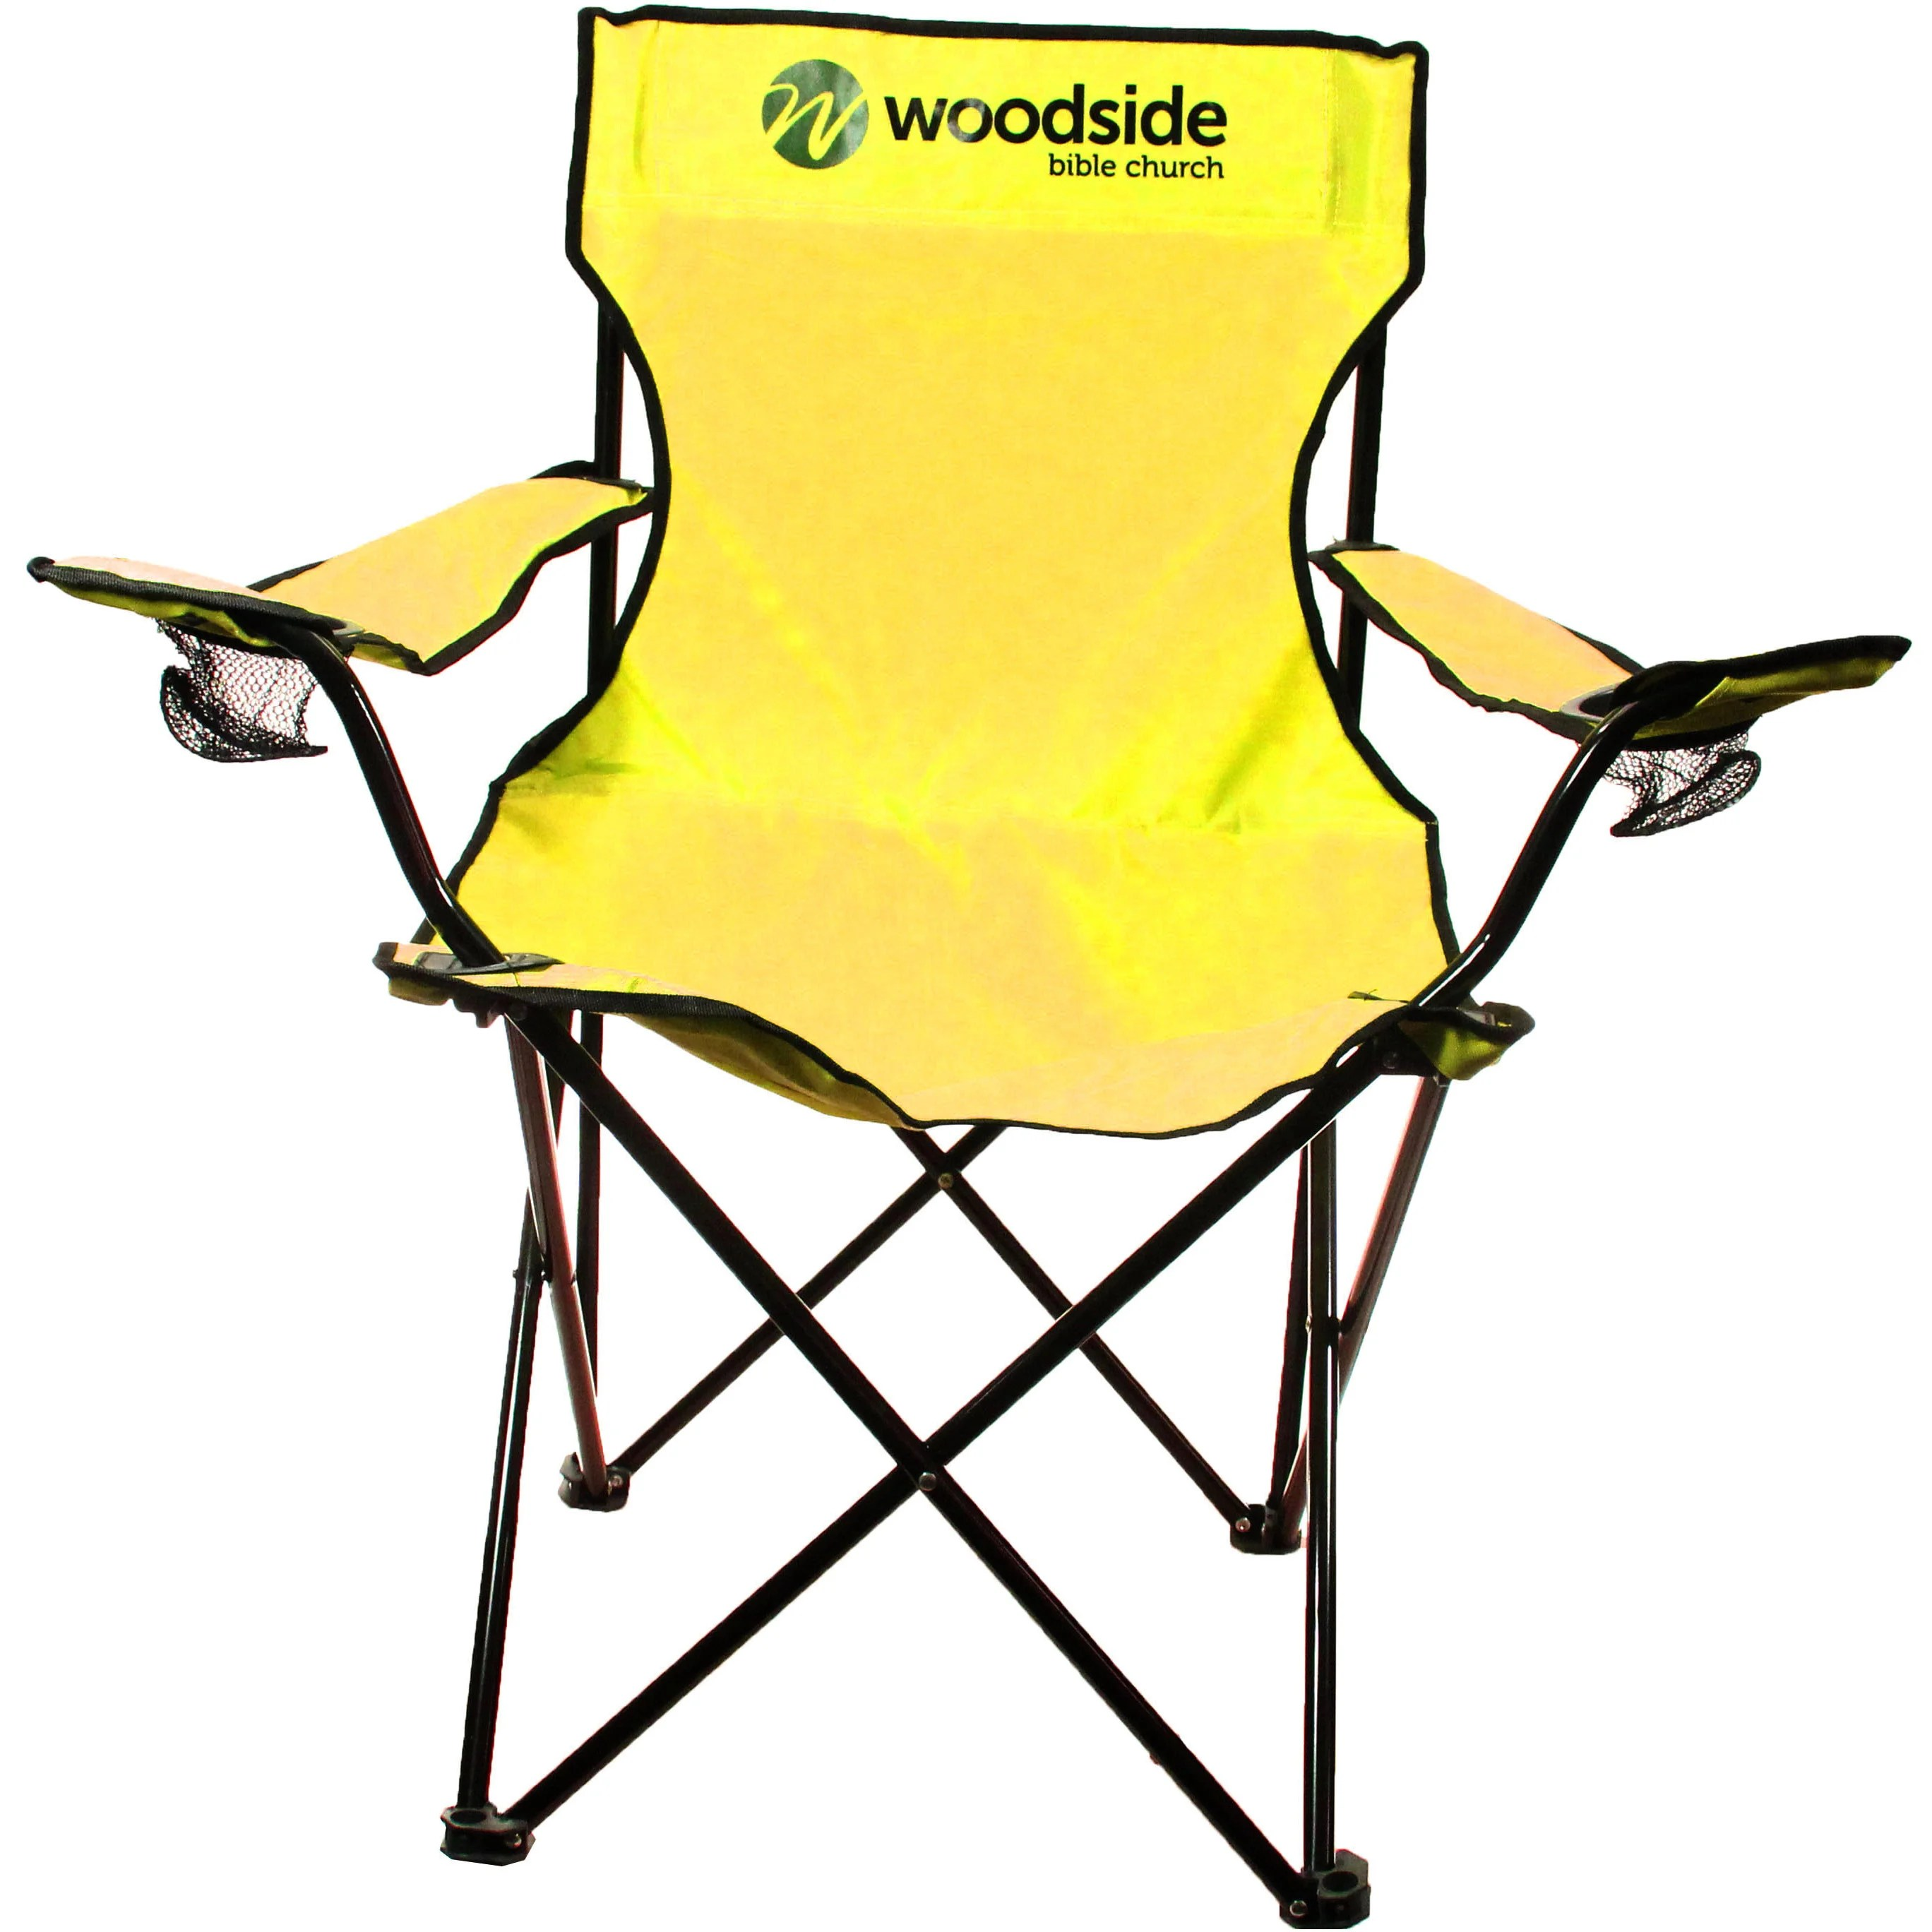 quality folding chairs high top table and chair sets with carrying bag trade show giveaways